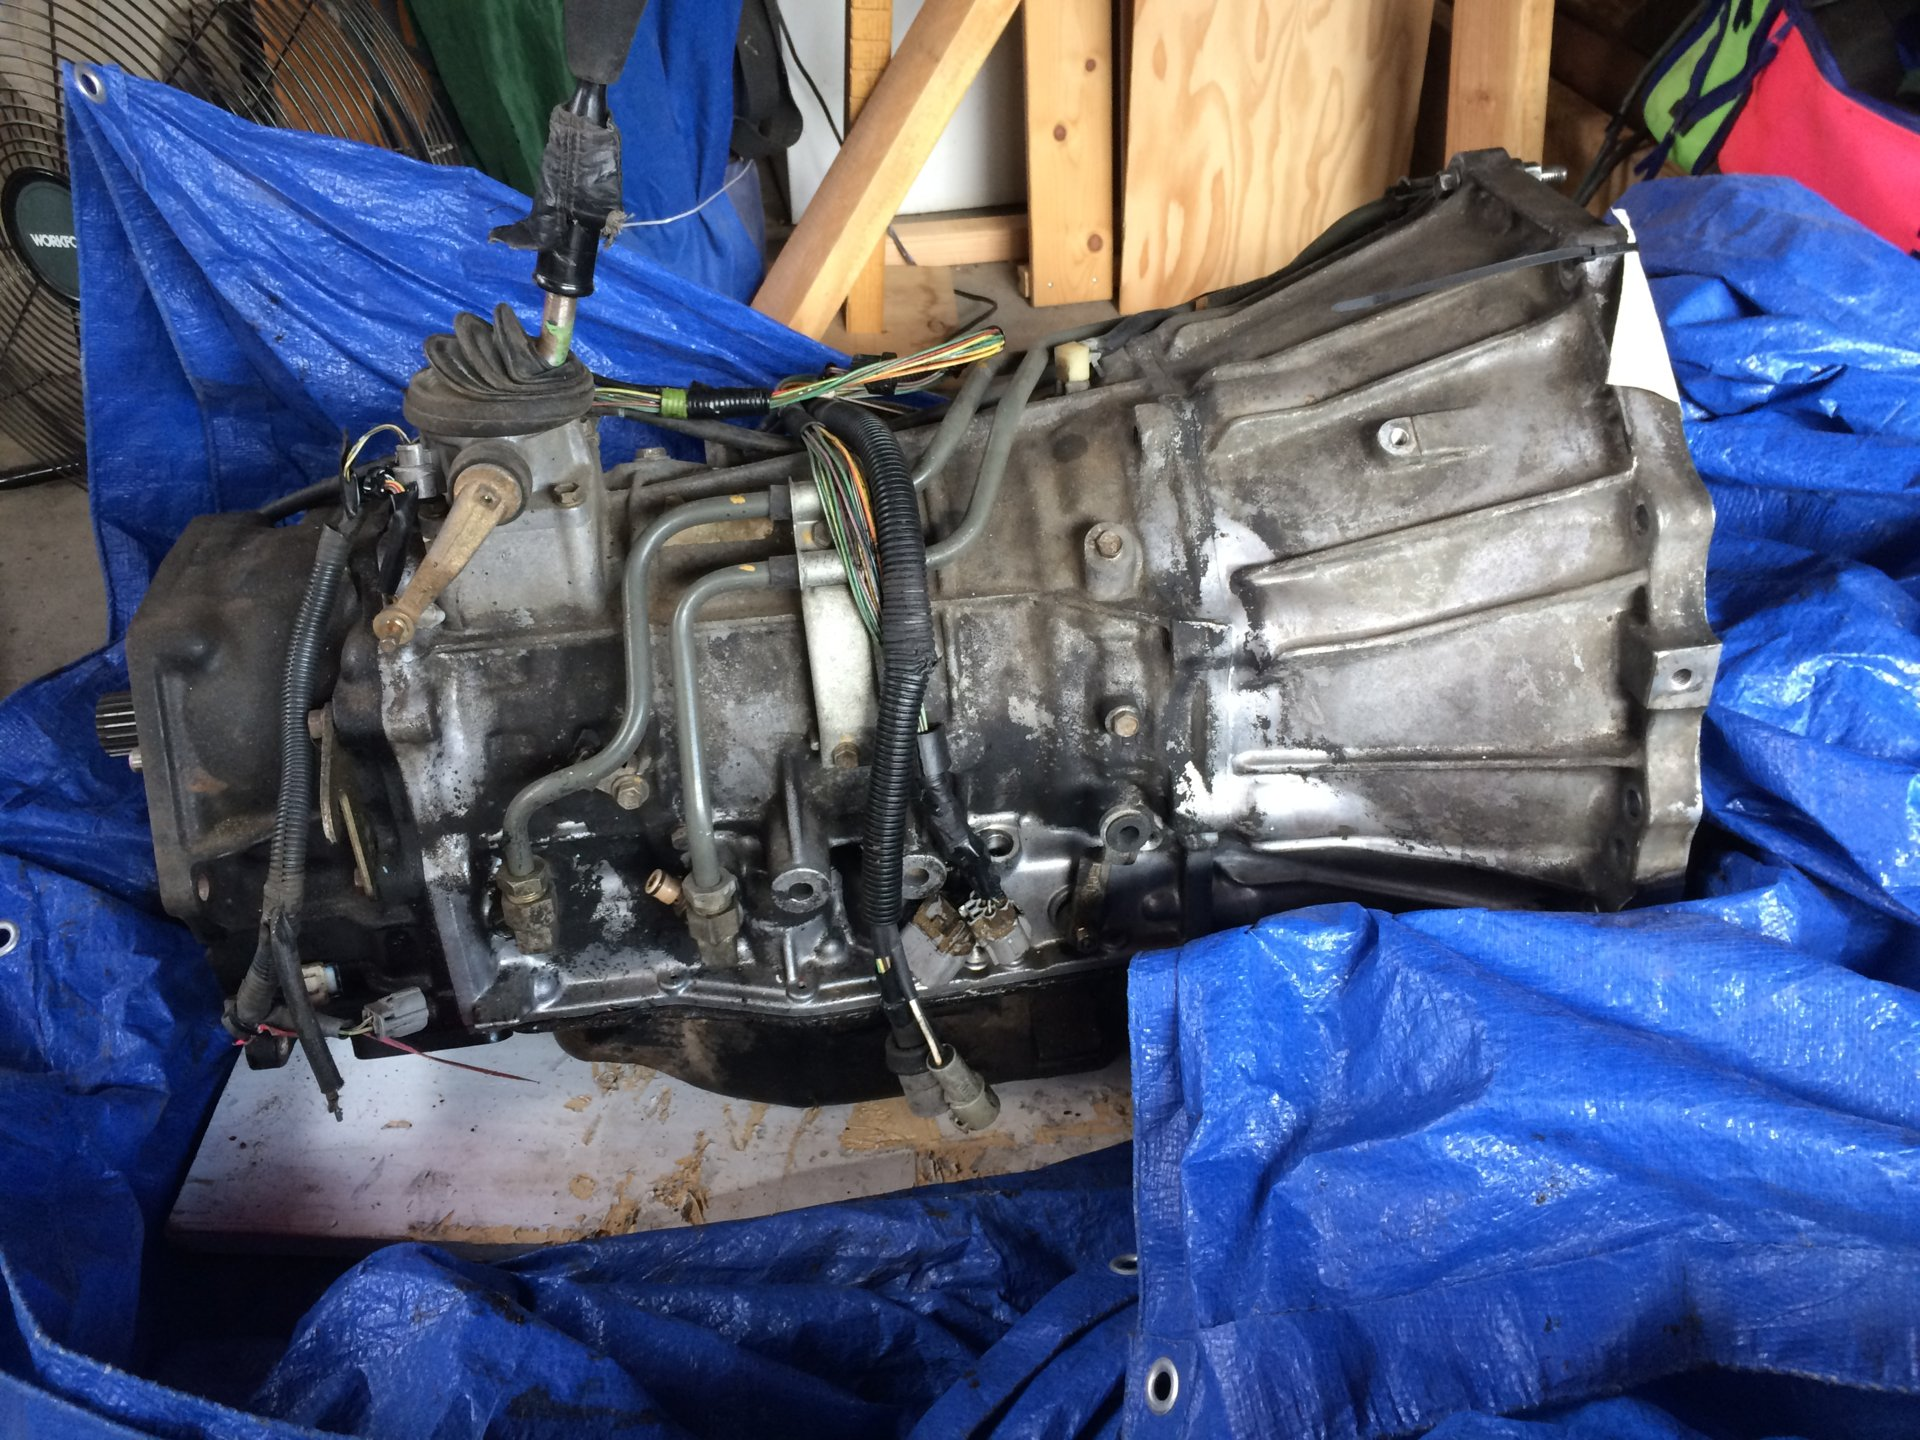 For Sale A442F 1994 used transmission